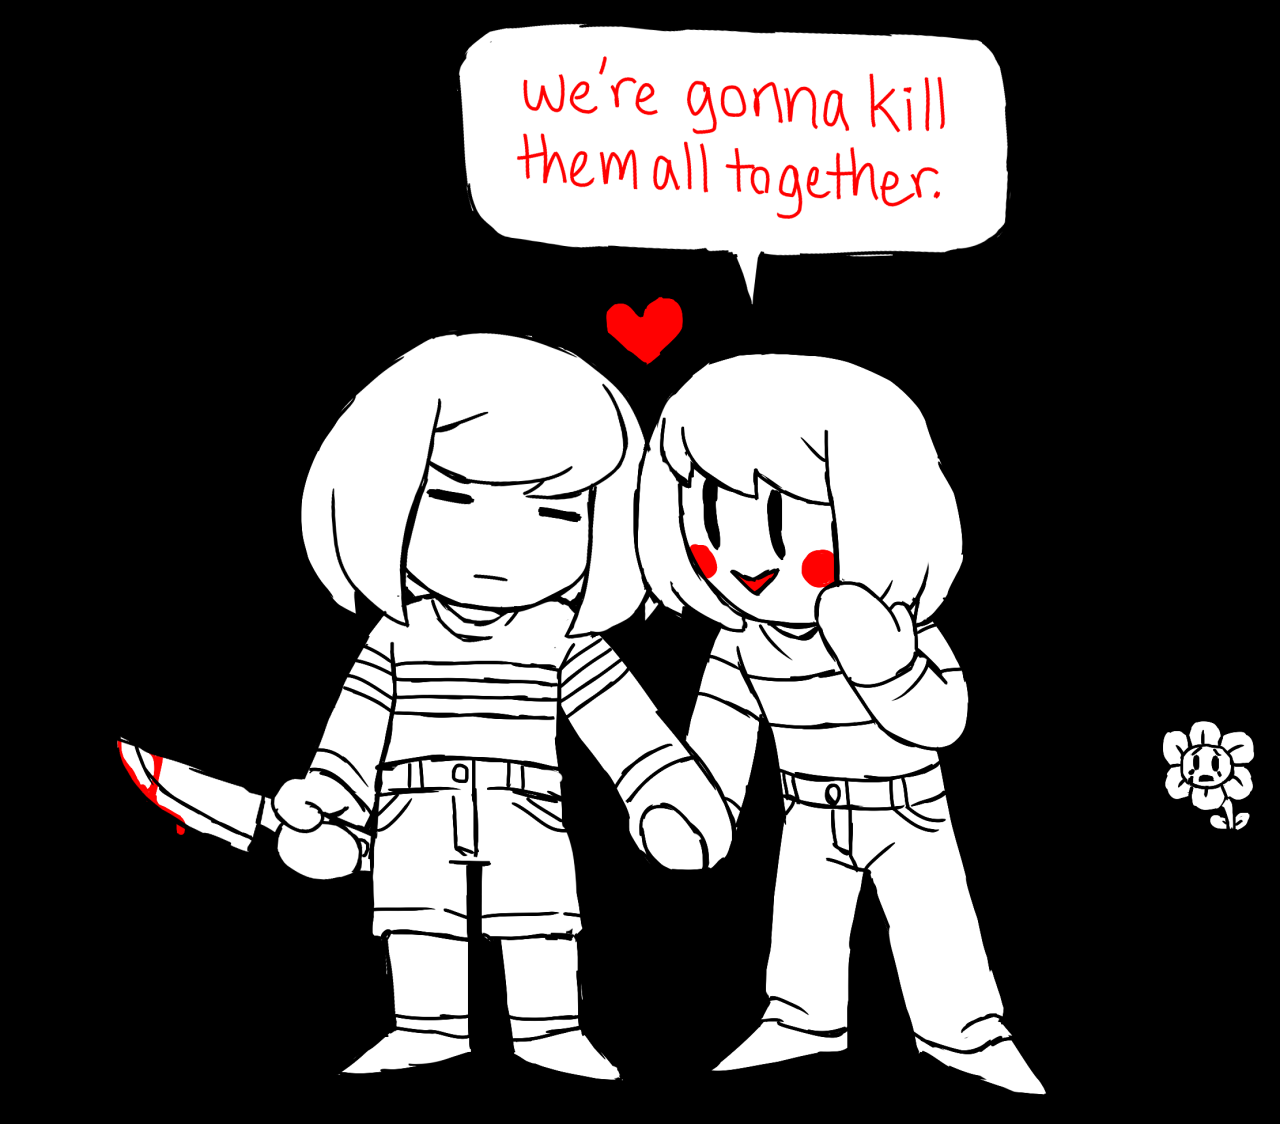 Asriel X Frisk Porno Gif right undertale know your meme | free hot nude porn pic gallery